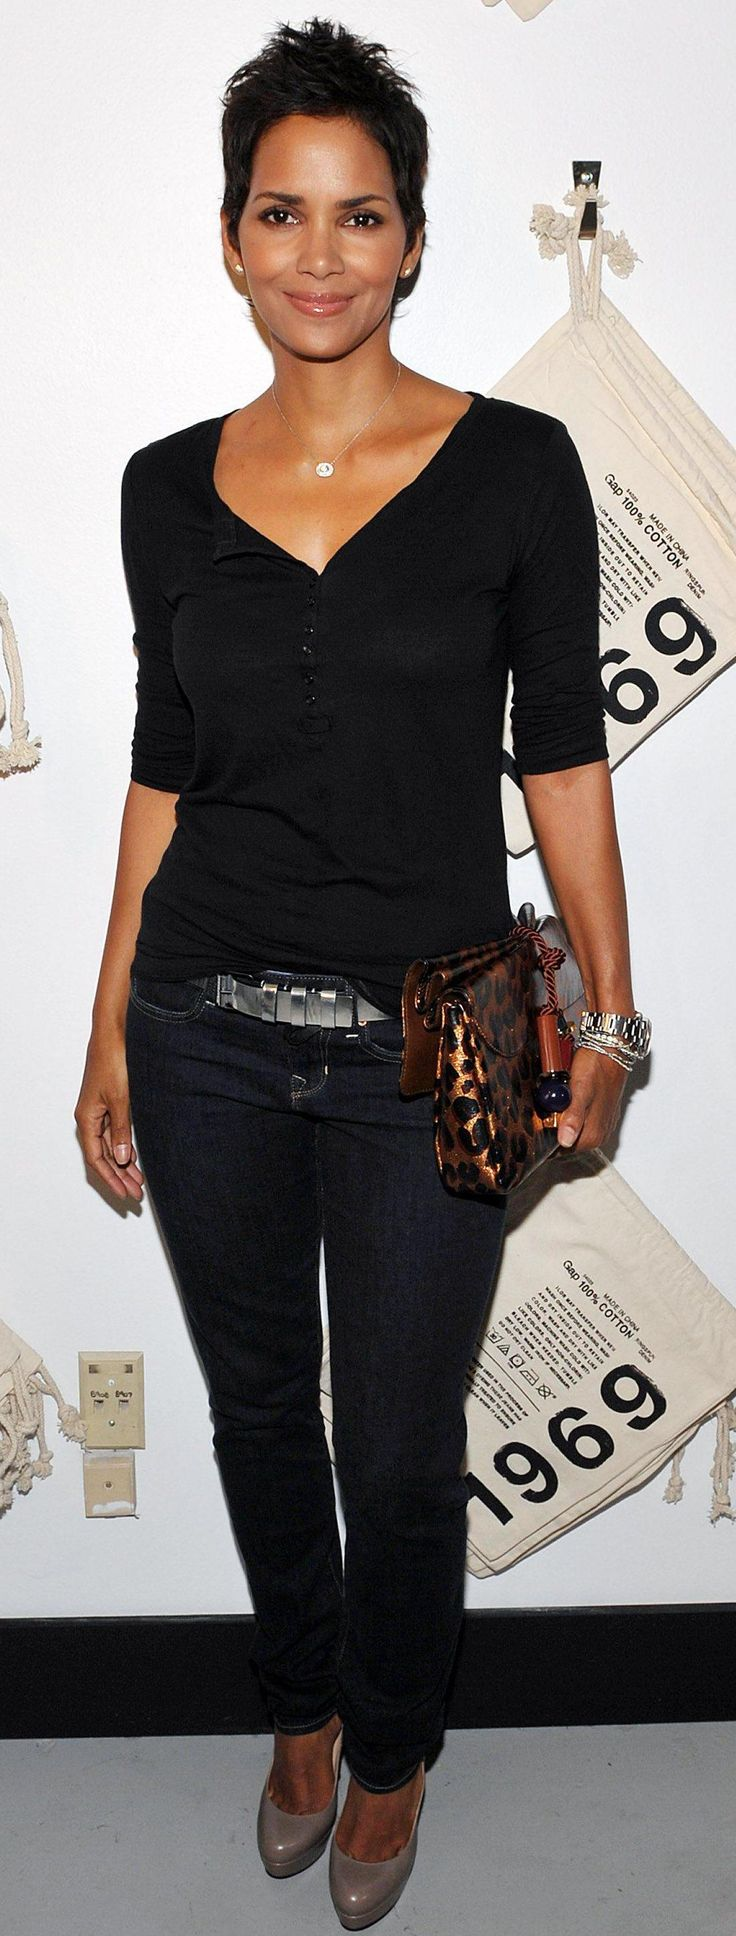 Halle Berry - If you'd like more of this visit www.styleopath.com & for a chance to win £200 worth of luxury afro hair products.$24.99 rayban sunglasses http://www.okglassesvips.com